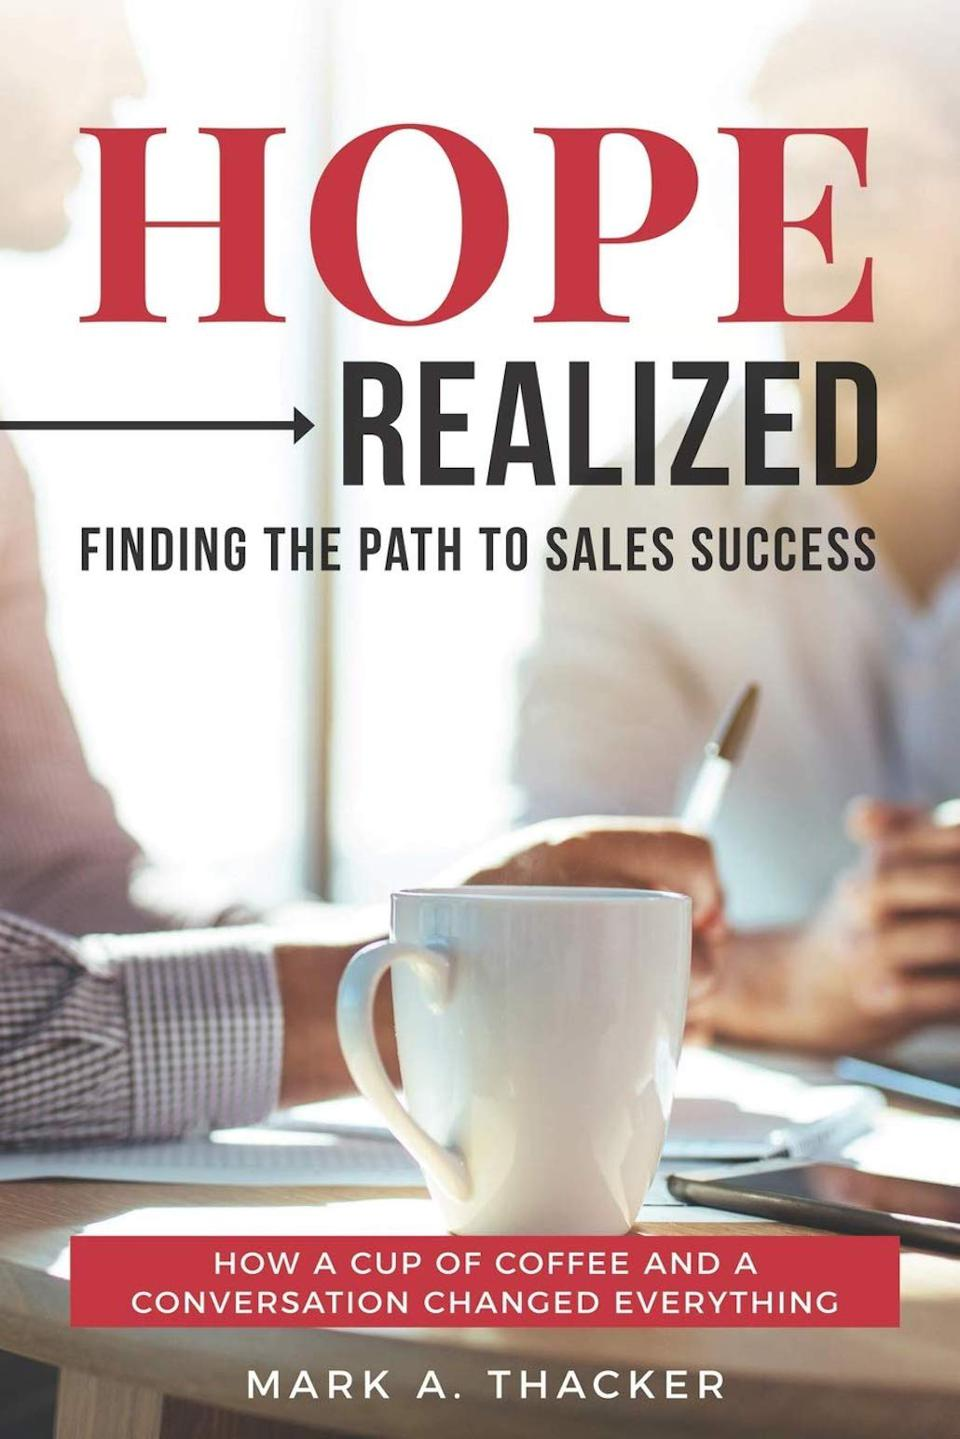 Hope Realized: Finding the Path to Sales Success by Mark A. Thacker